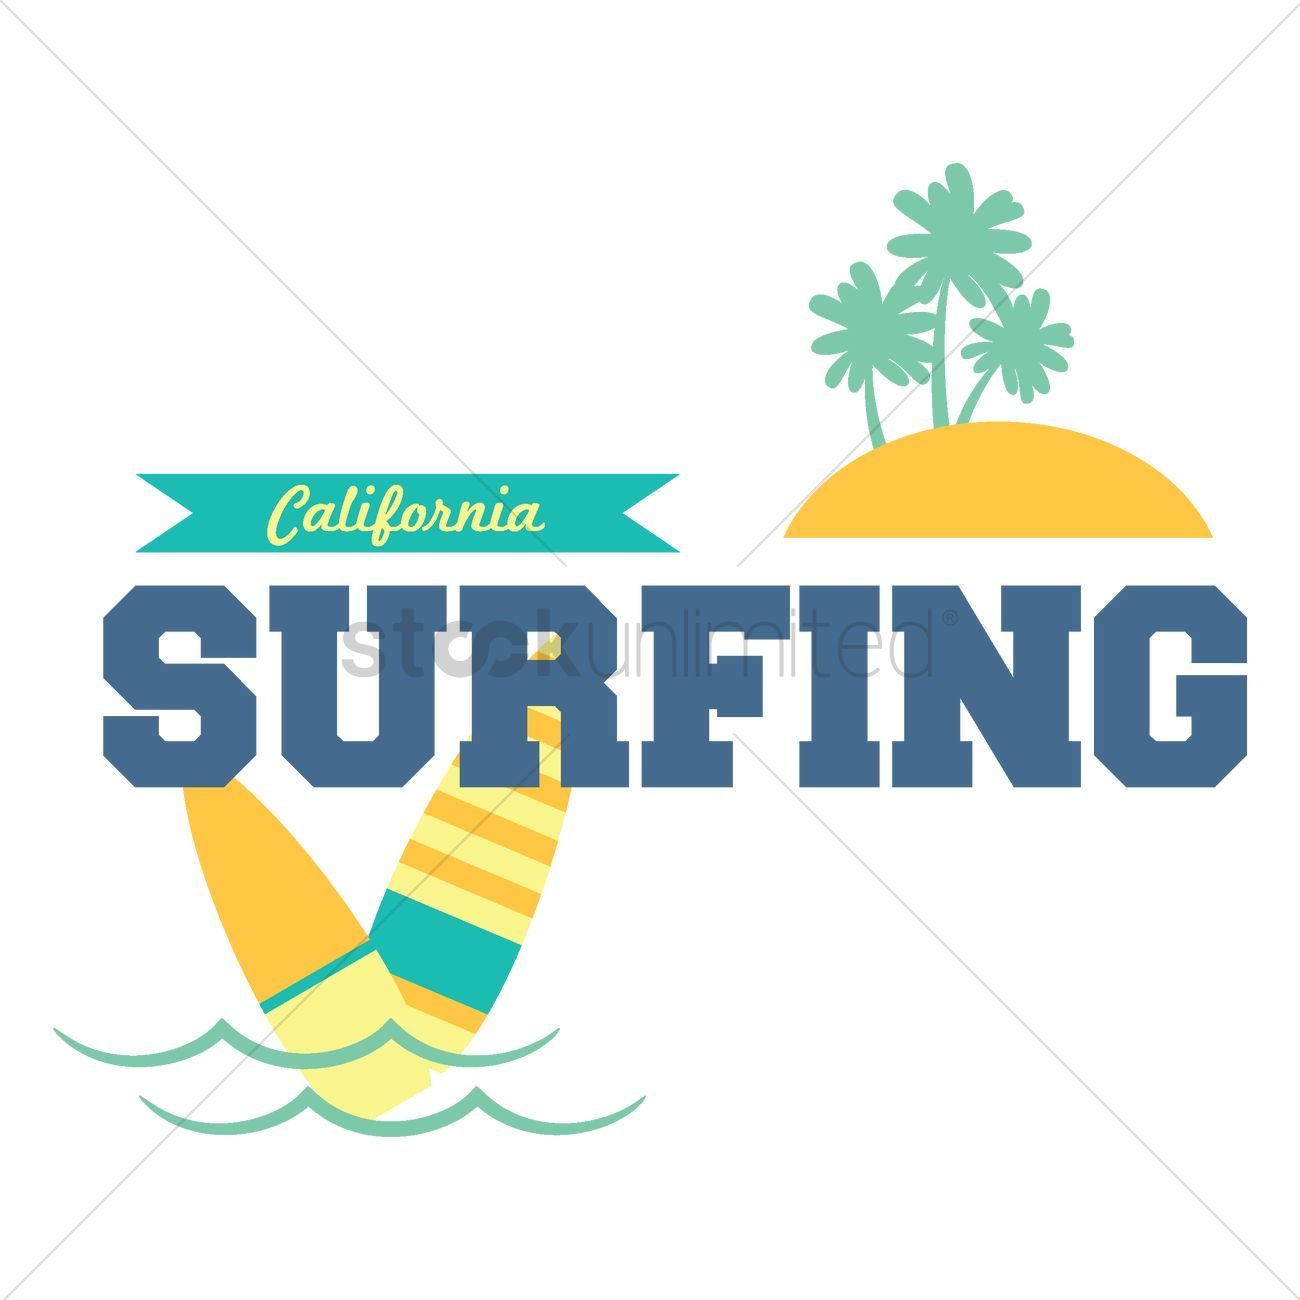 California surfing text stock vector ,